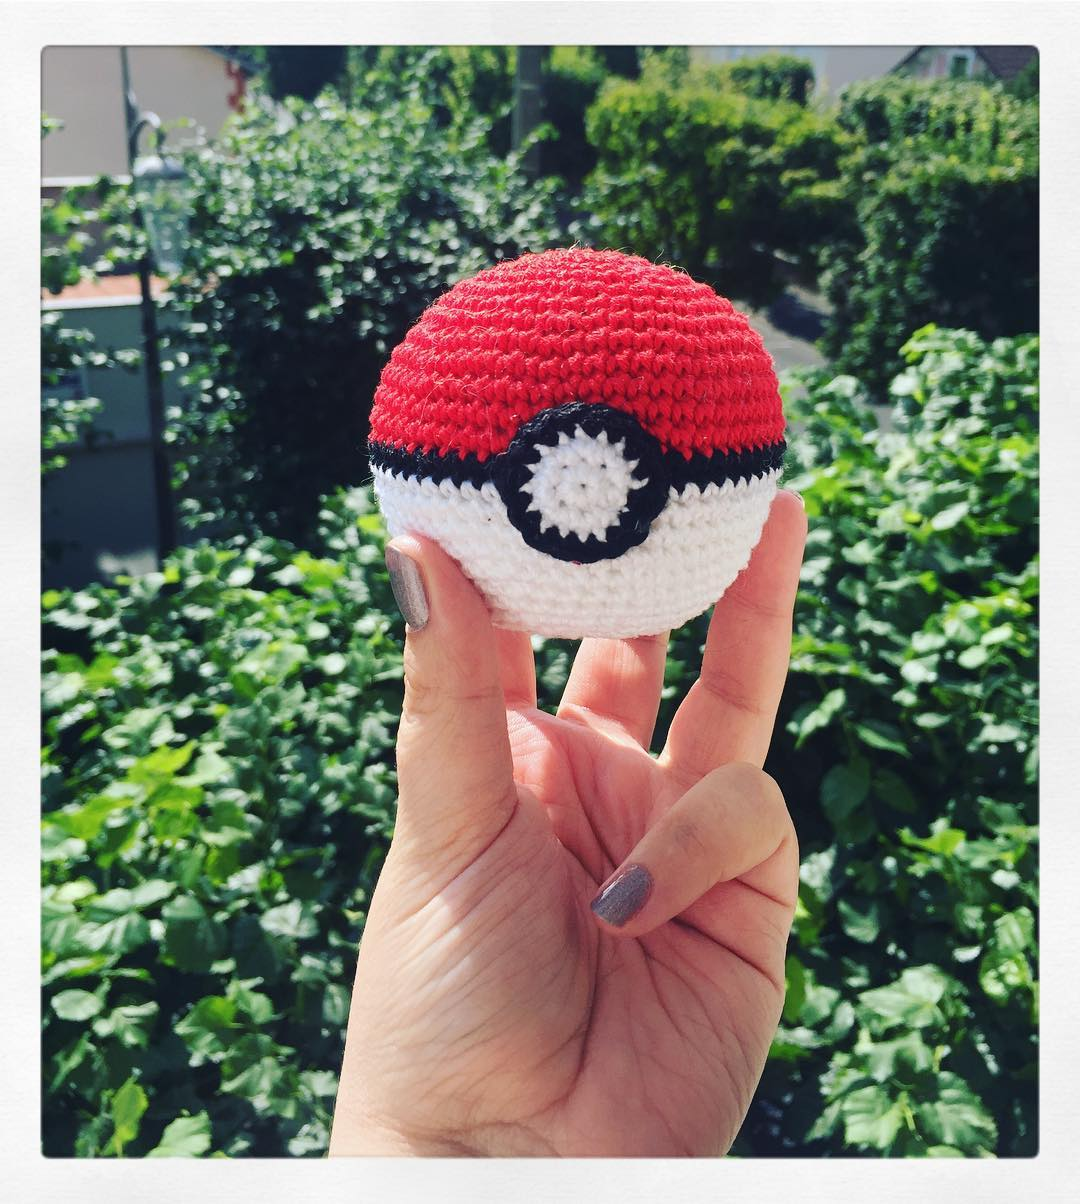 Perfect Pokémon Go Poké Ball – It's Crochet!